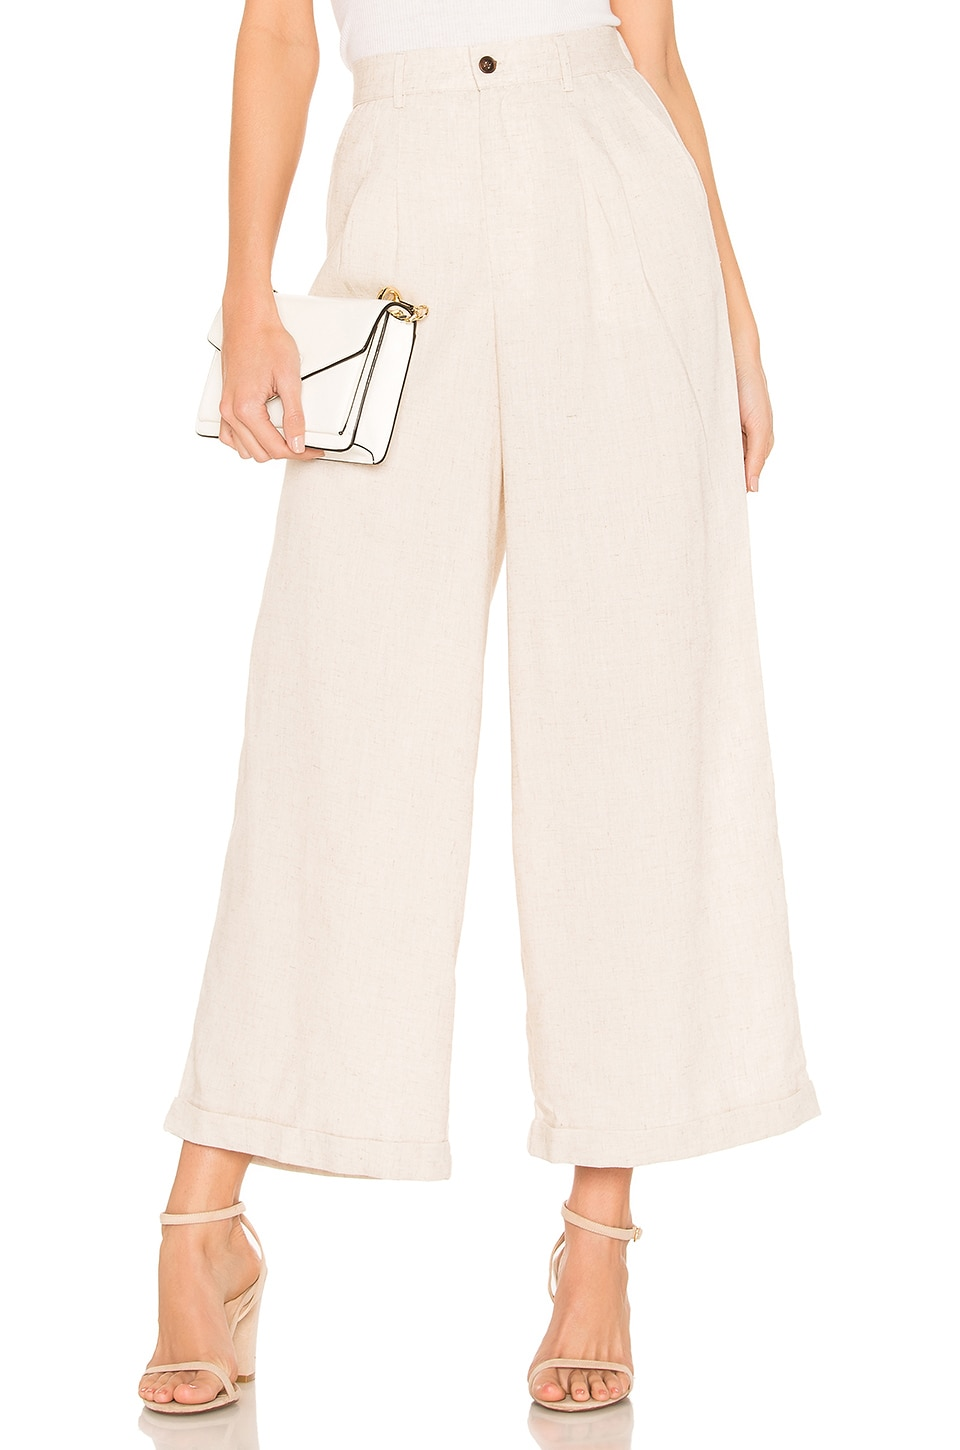 MINKPINK Utility Wide Leg Pant in Natural